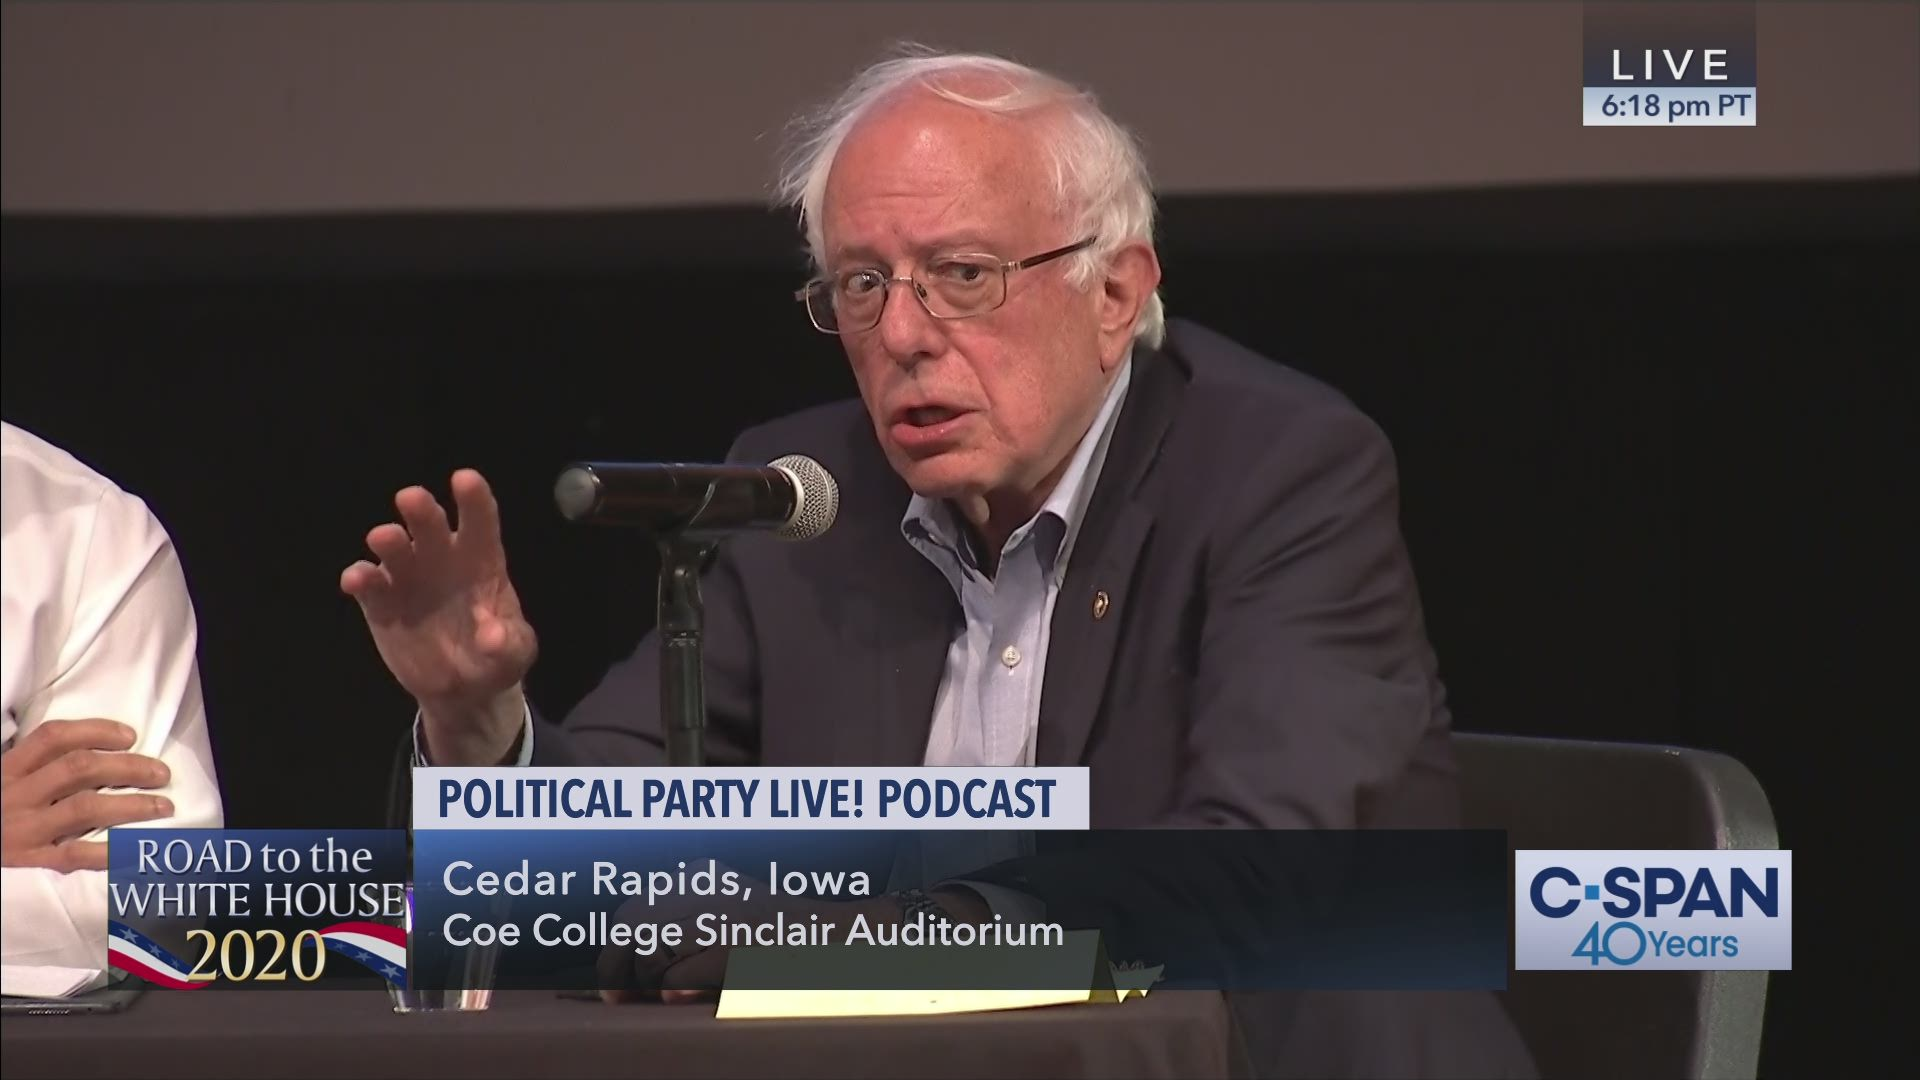 Best Podcast Hosting 2020 Senator Bernie Sanders at Political Party Live! Podcast in Iowa